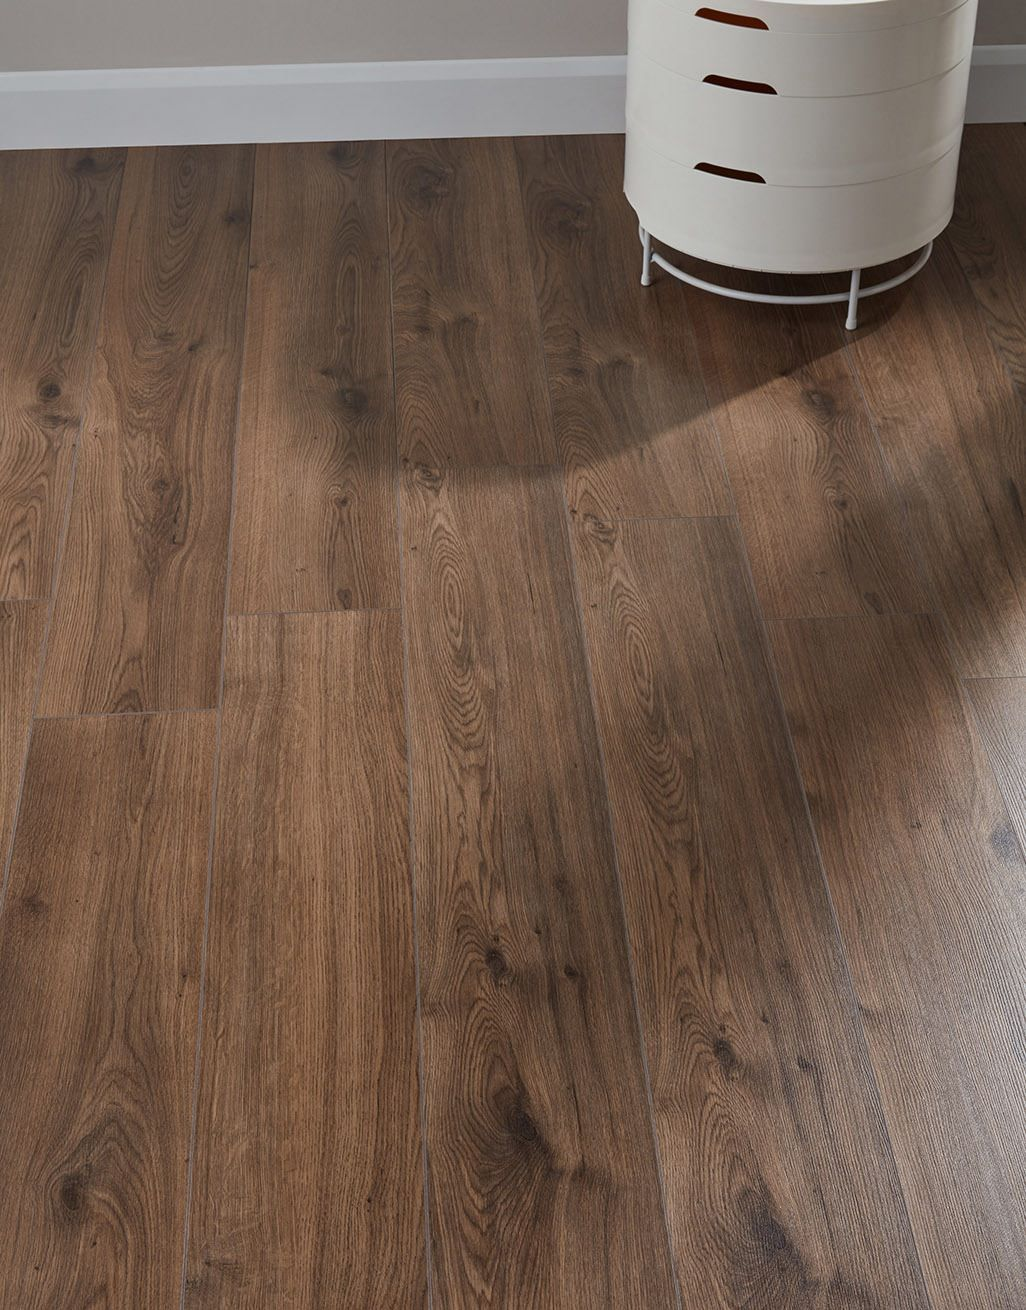 Farmhouse Dark Oak Laminate Flooring Direct Wood Flooring